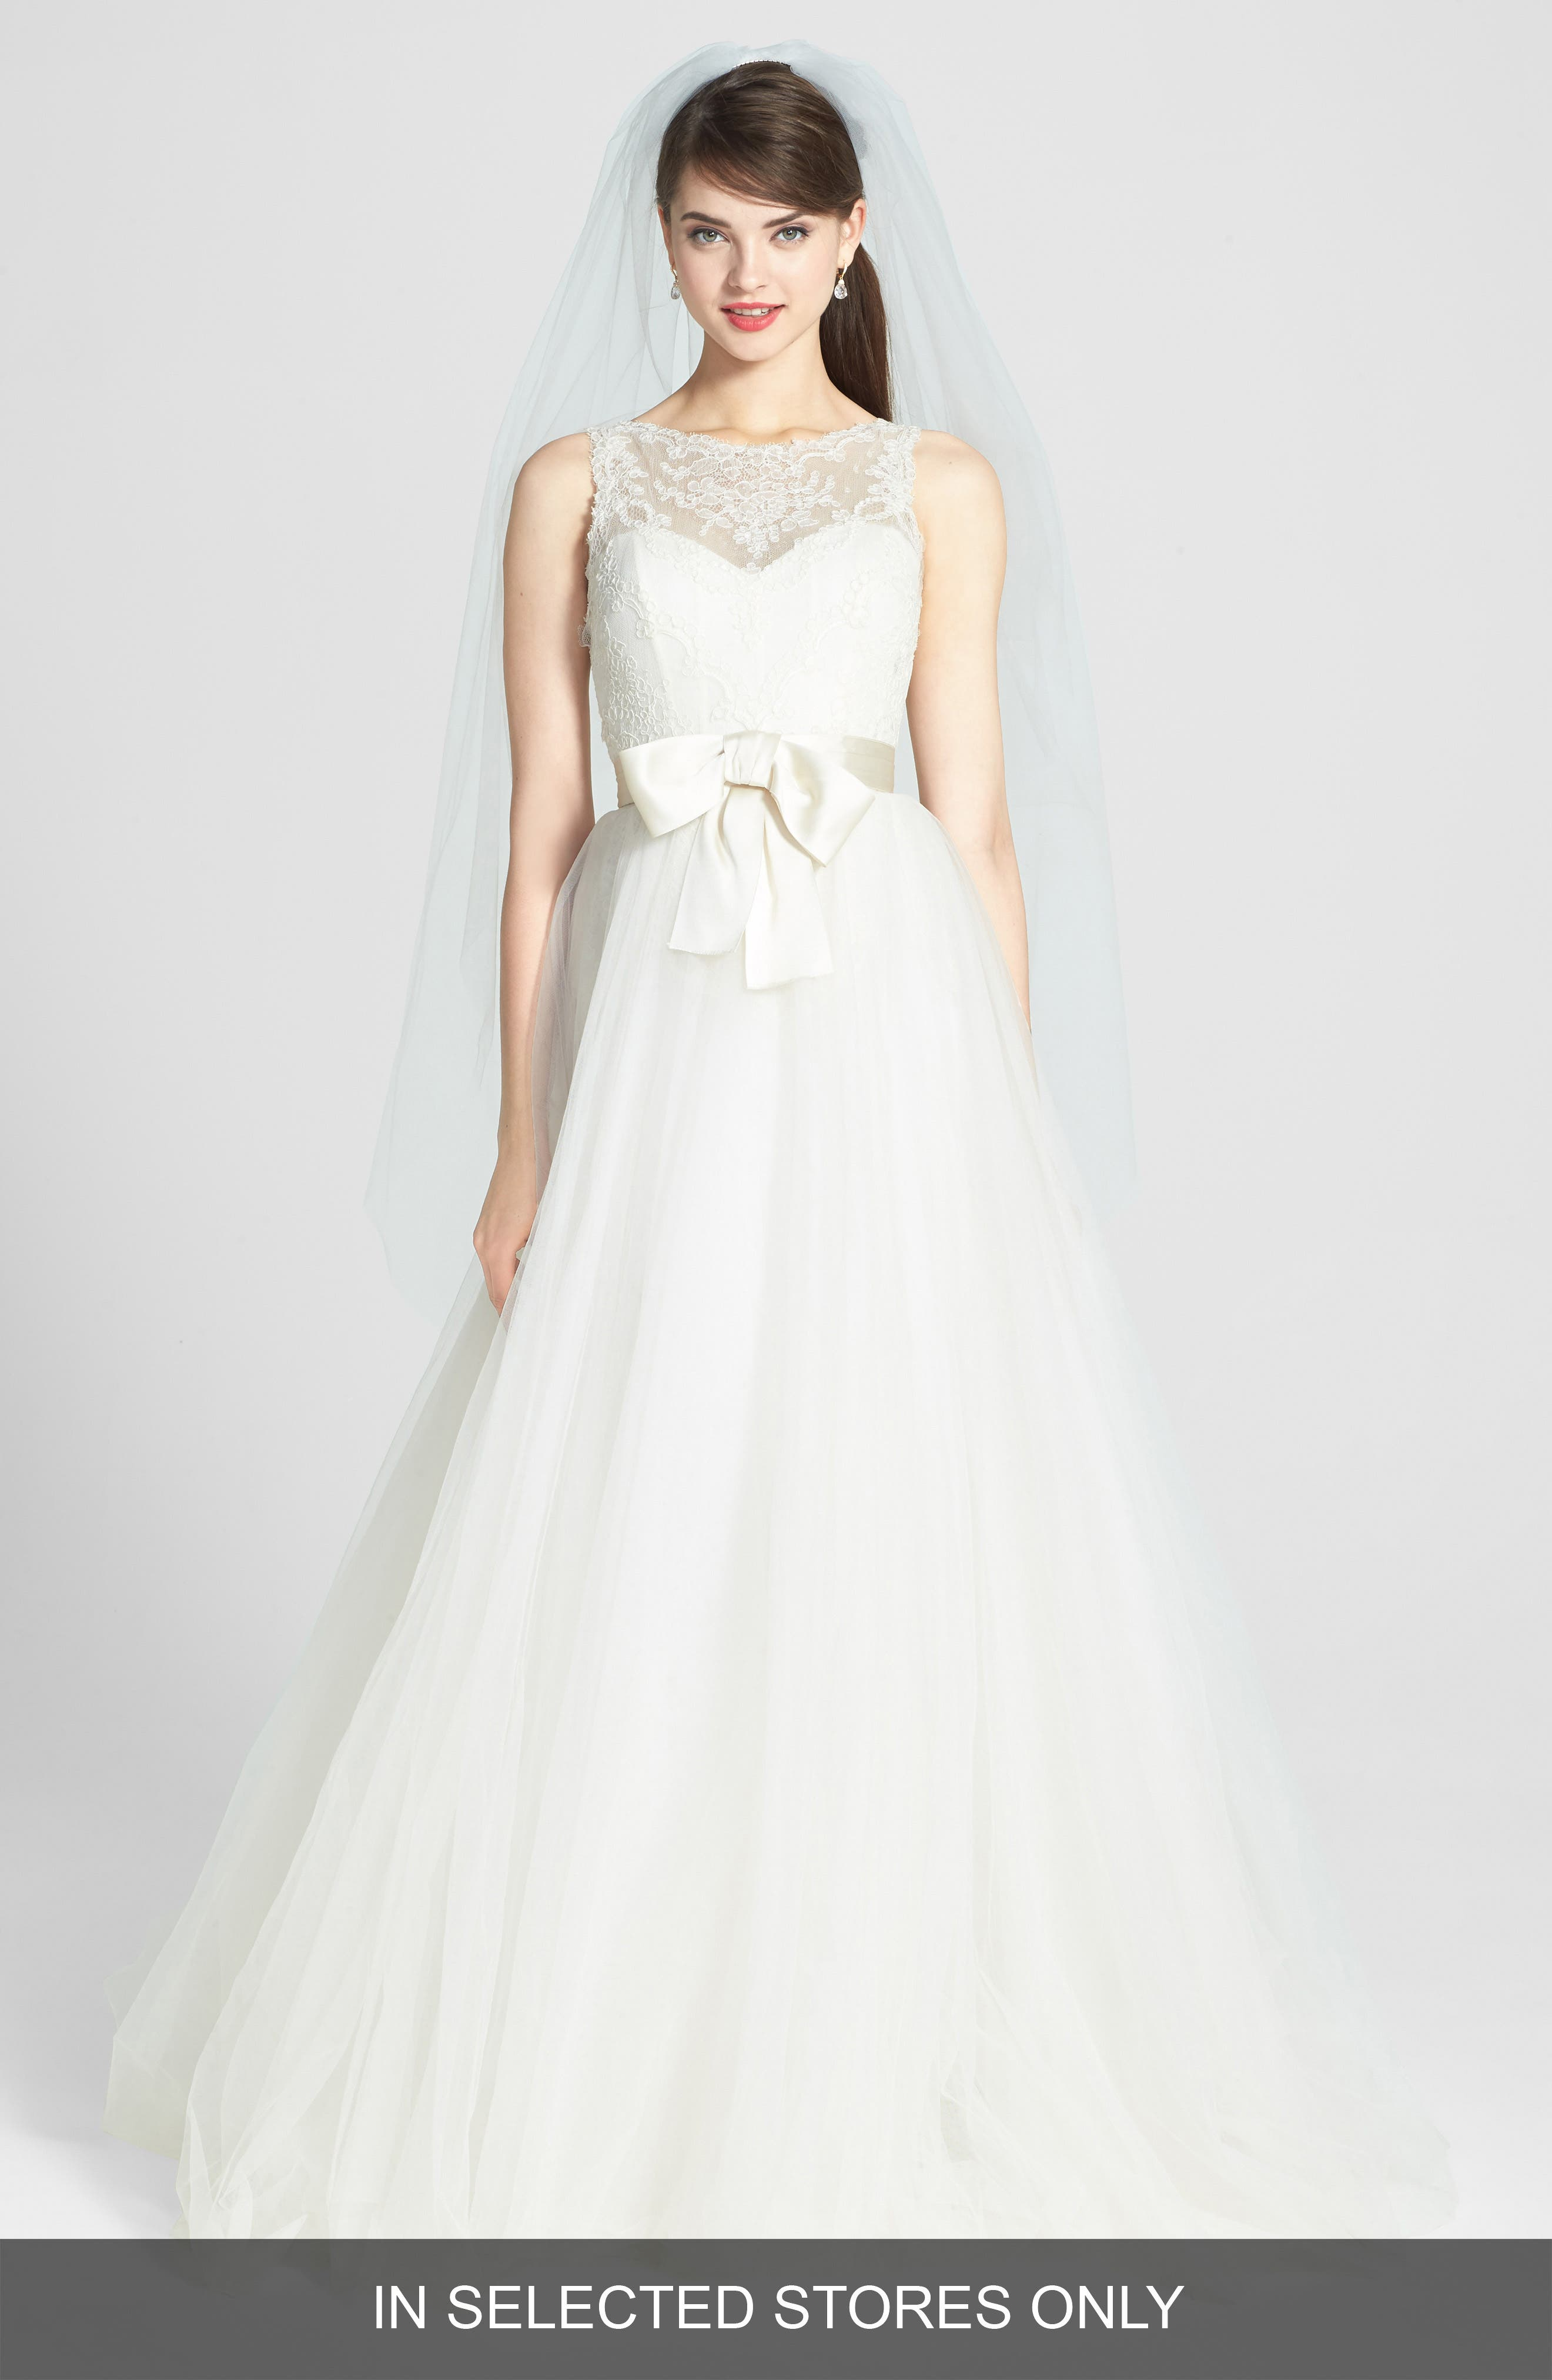 Main Image - Amsale Quinn French Lace Illusion Bodice Tulle Wedding Dress